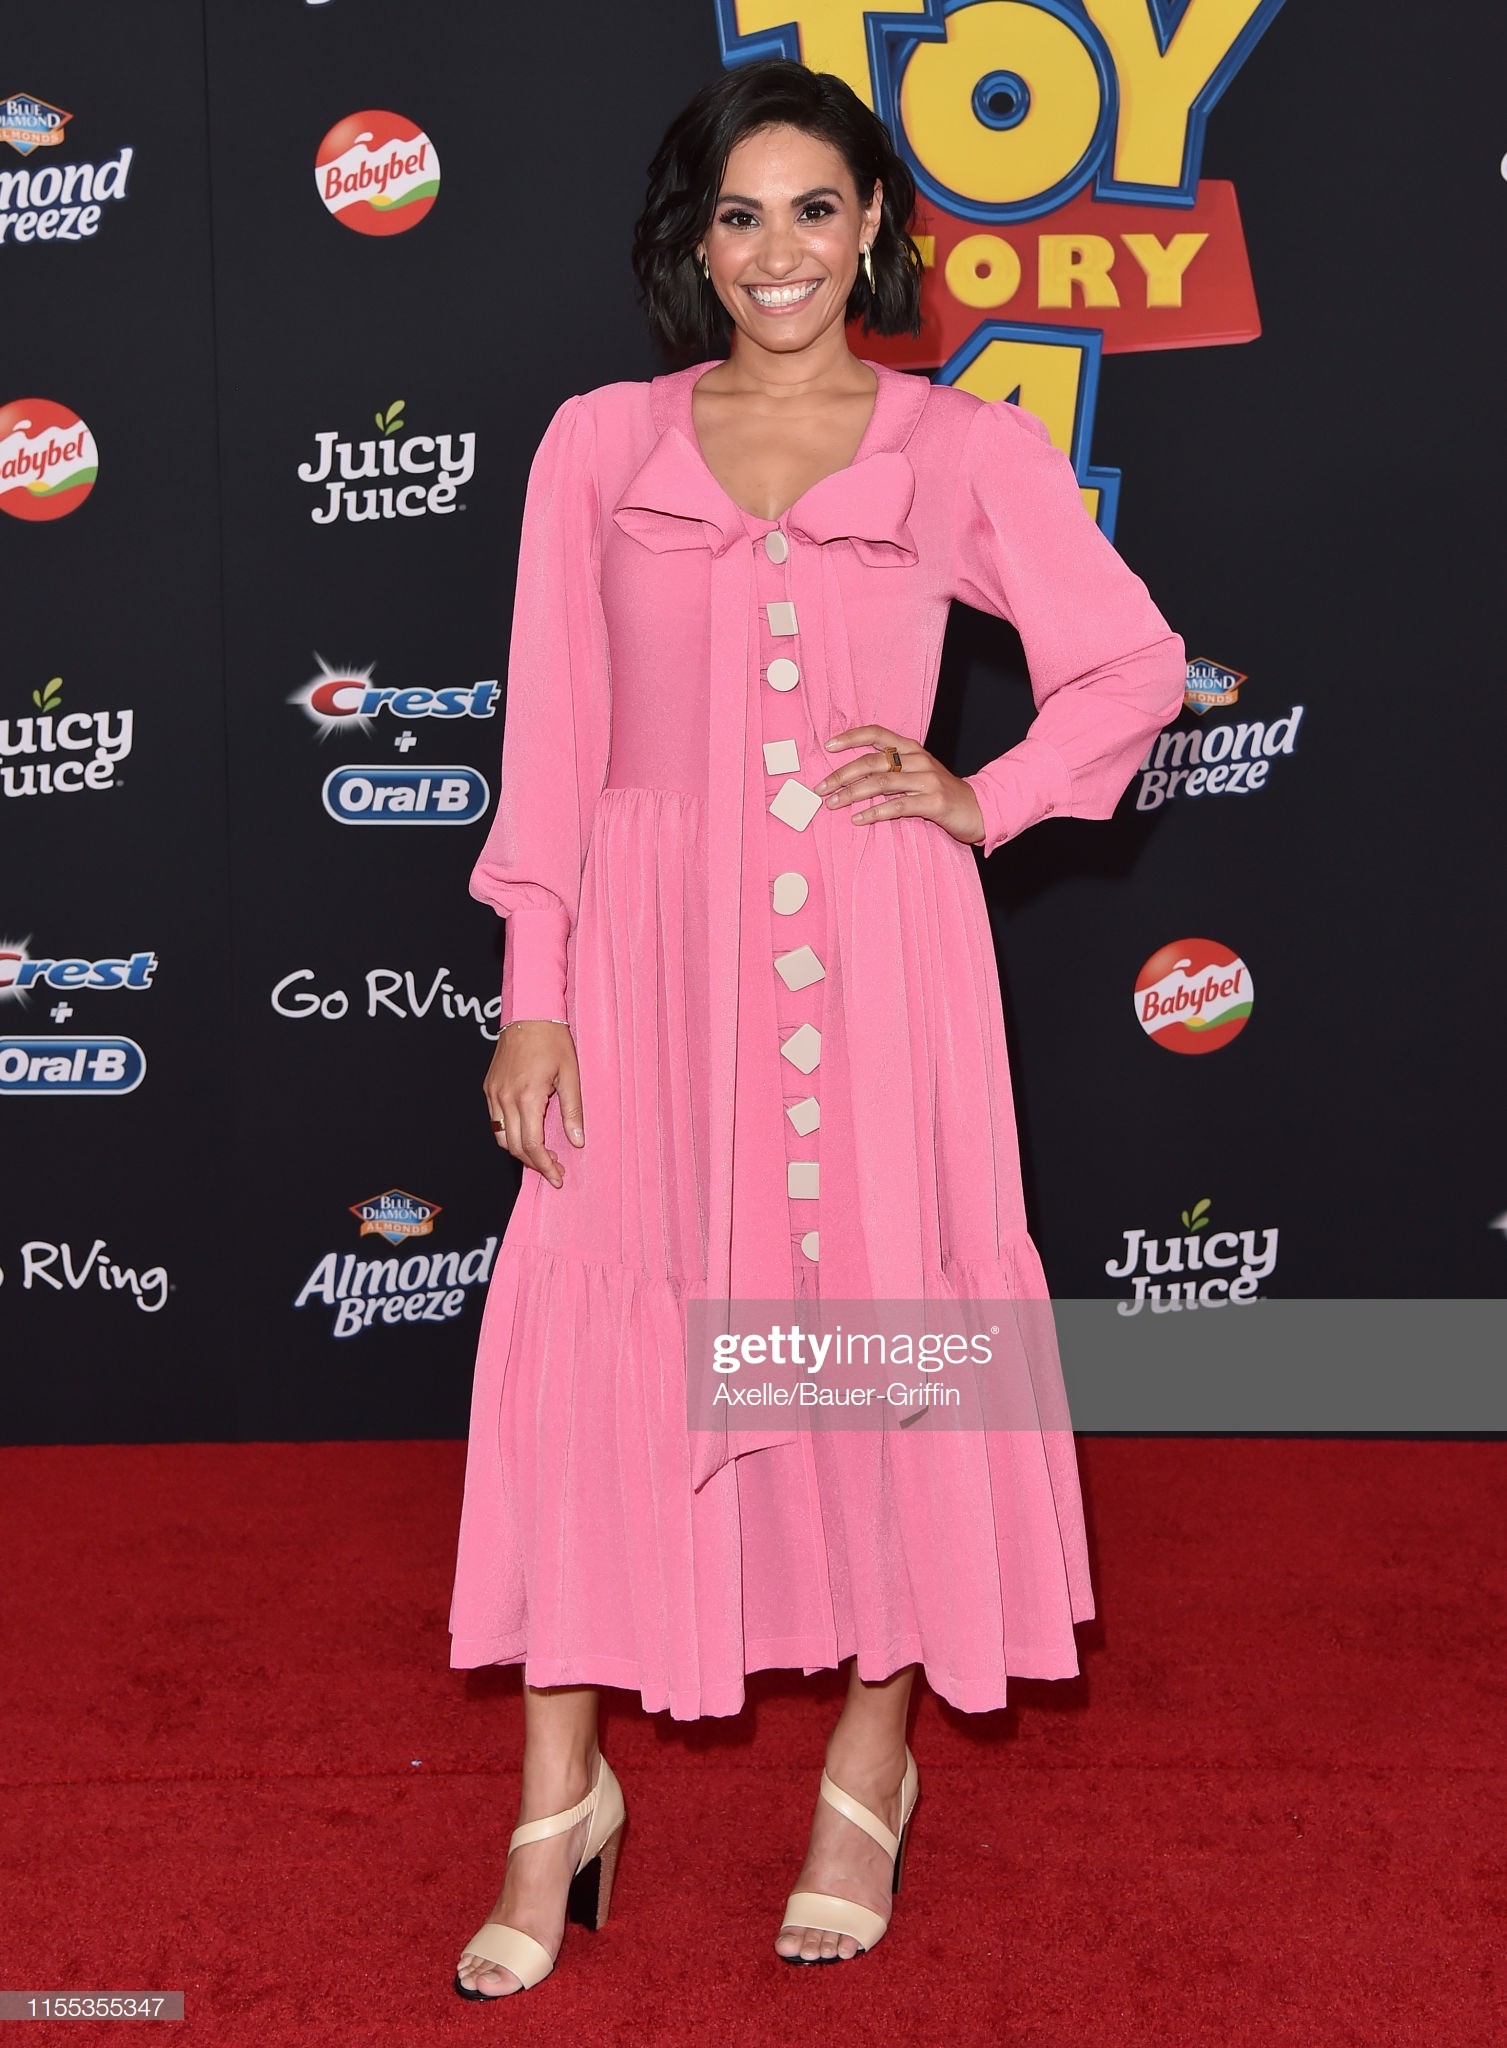 gettyimages-1155355347-2048x2048.jpg